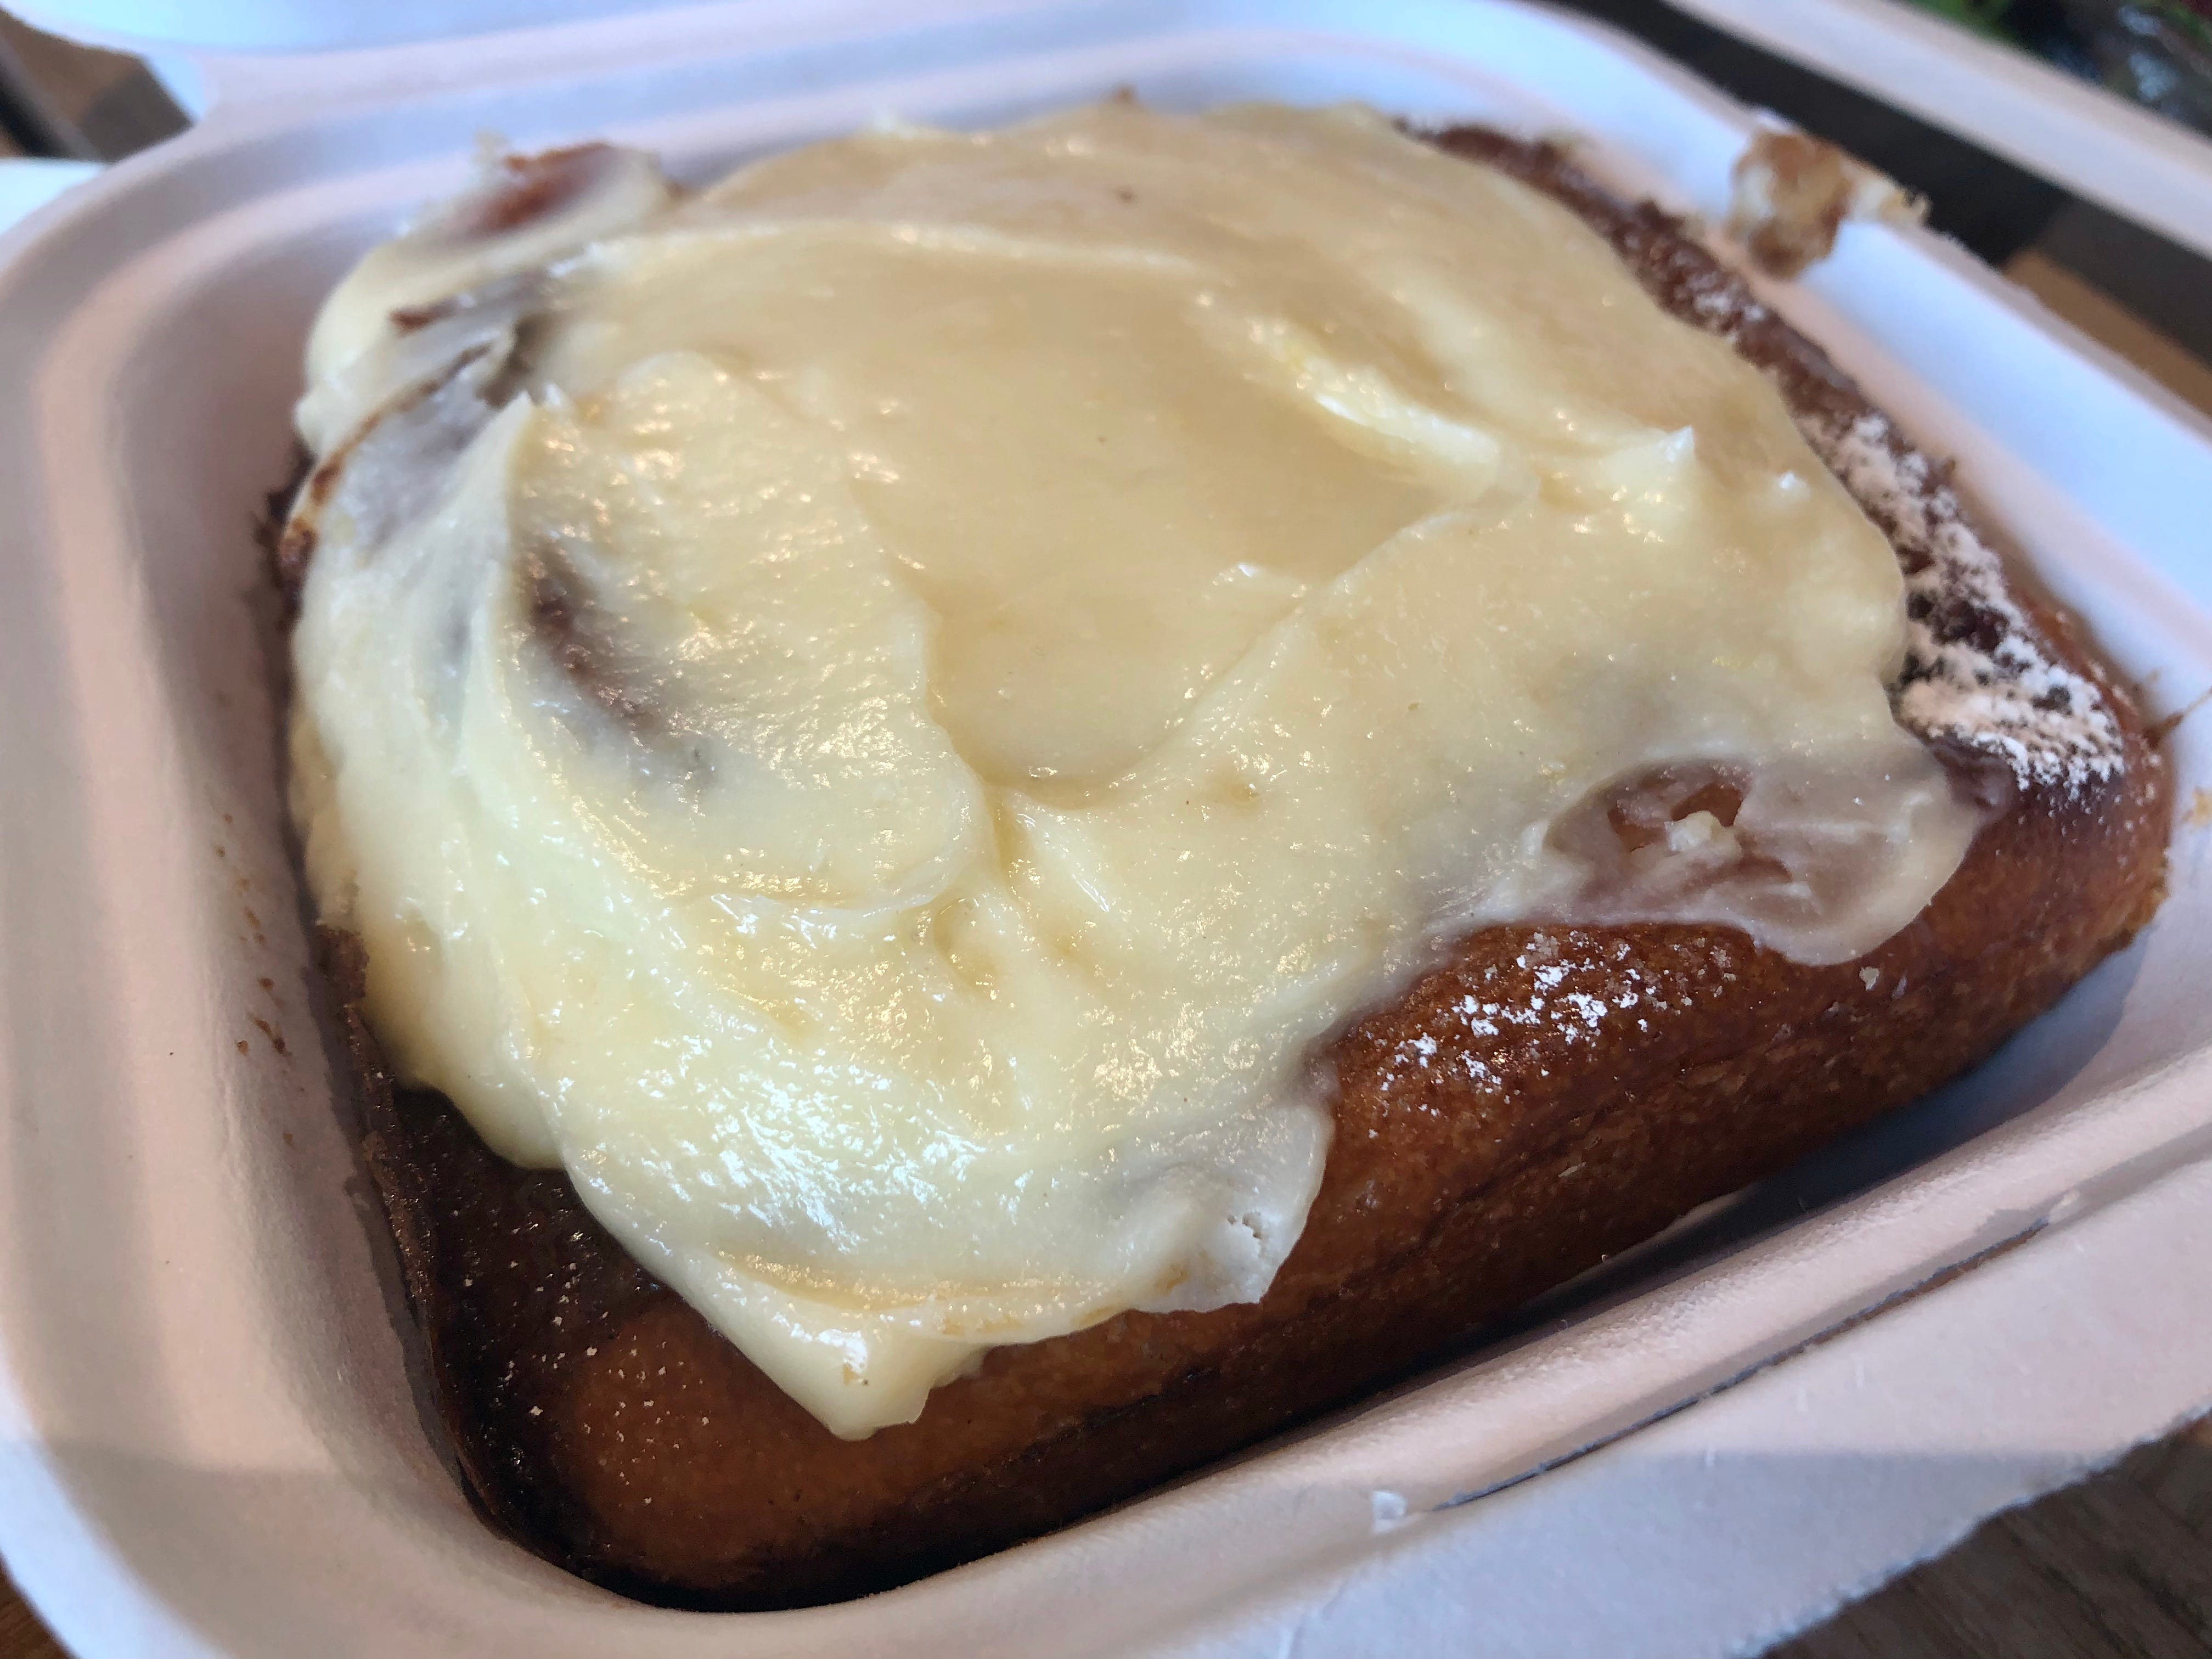 A house-baked cinnamon roll slathered in cream-cheese frosting from Norman Love Confections Cafe inside the Whole Foods Market in south Fort Myers.